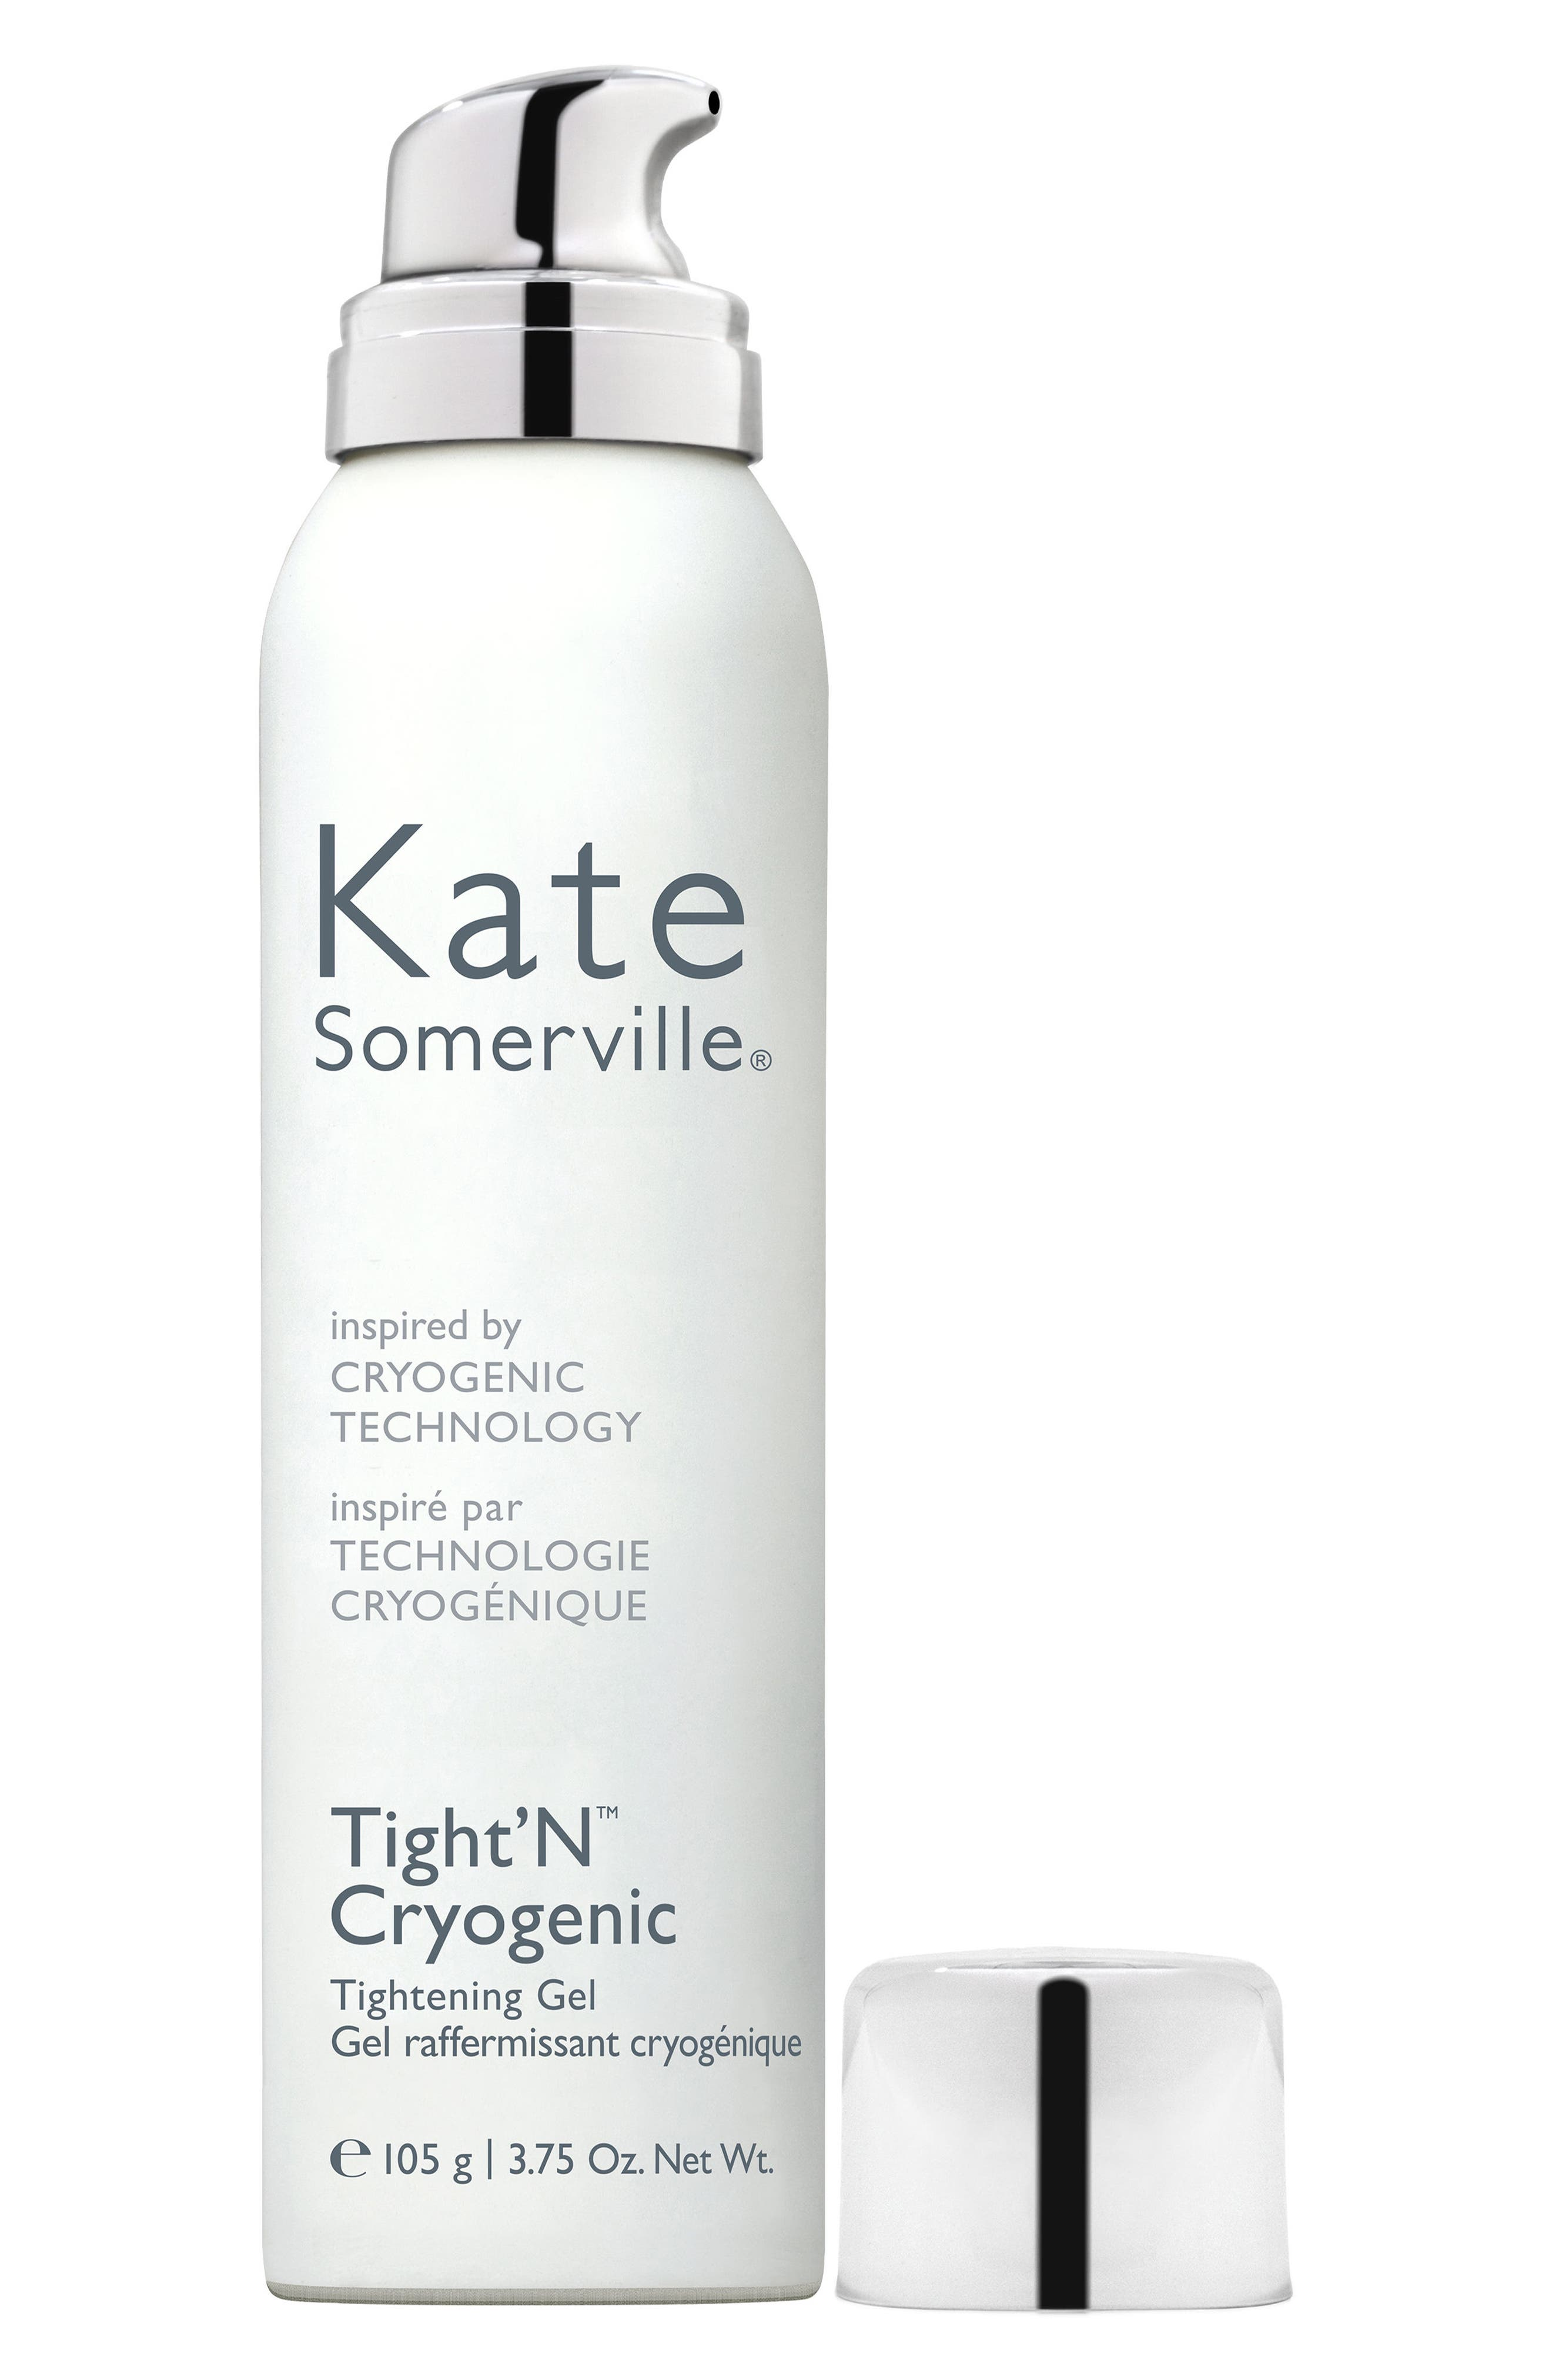 Kate Somerville® Tight'N Cryogenic Tightening Gel